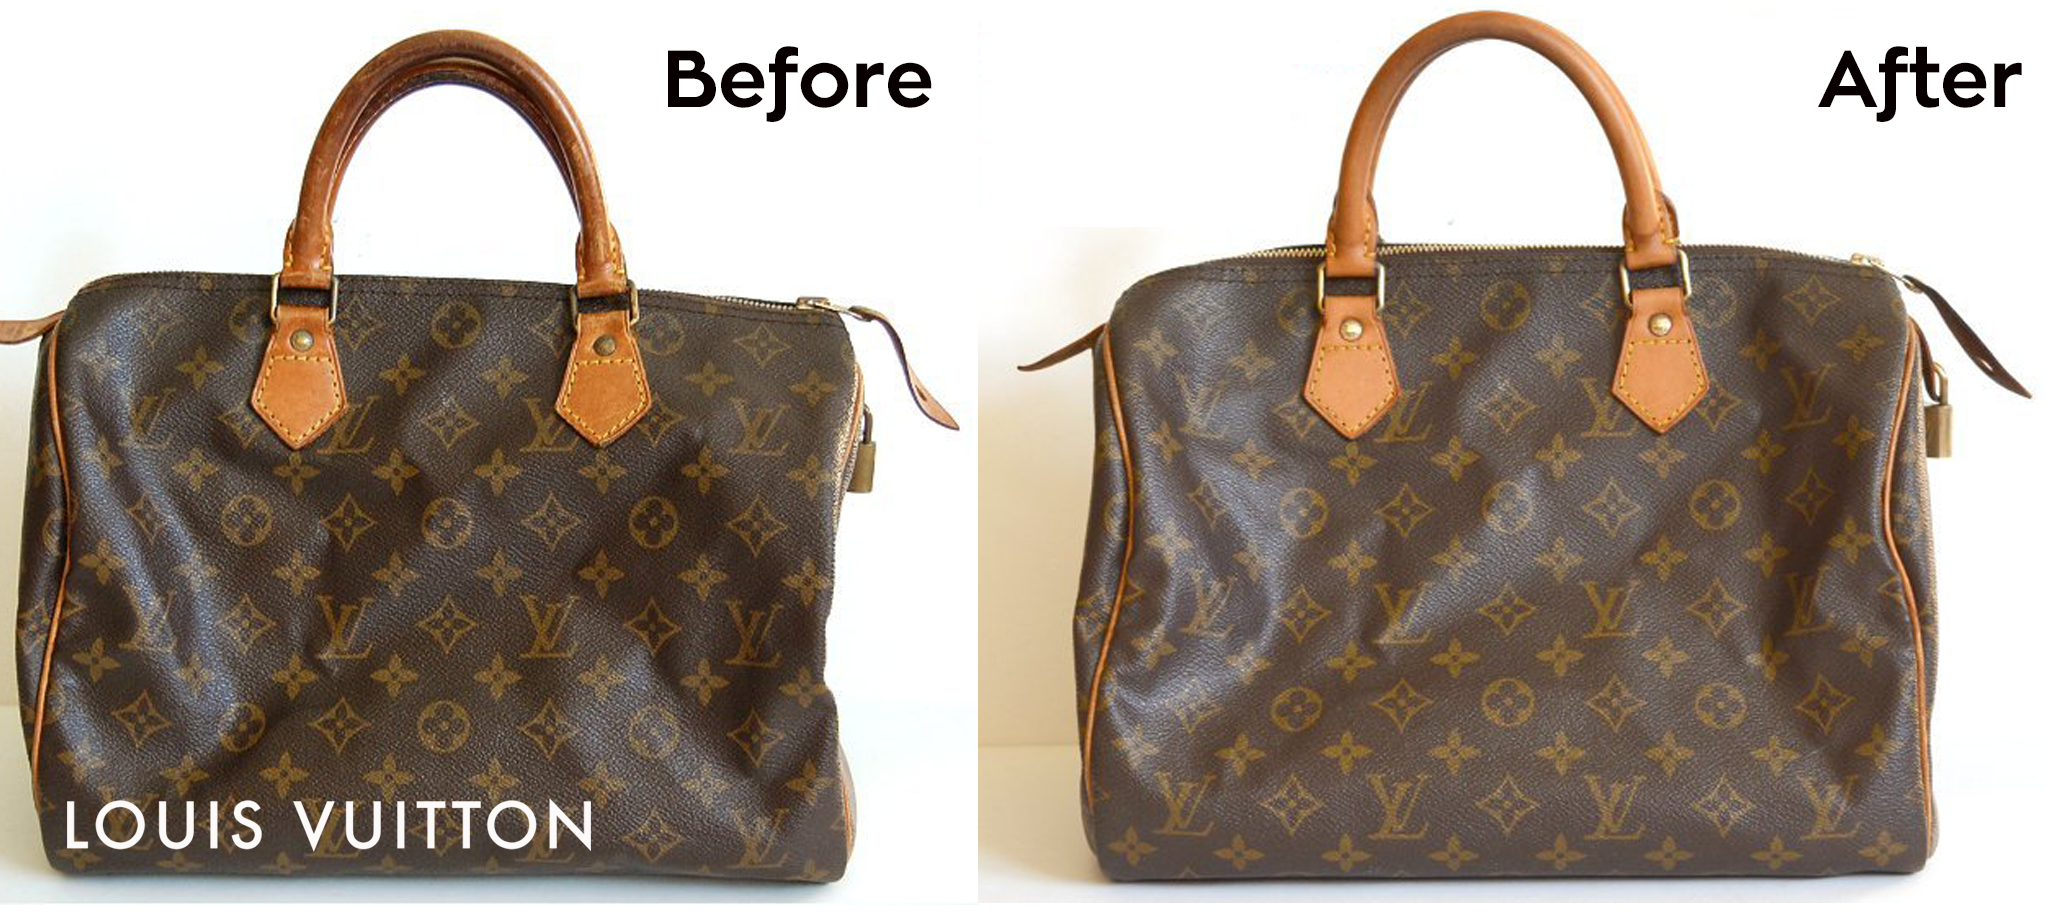 louis vuitton handbag repair